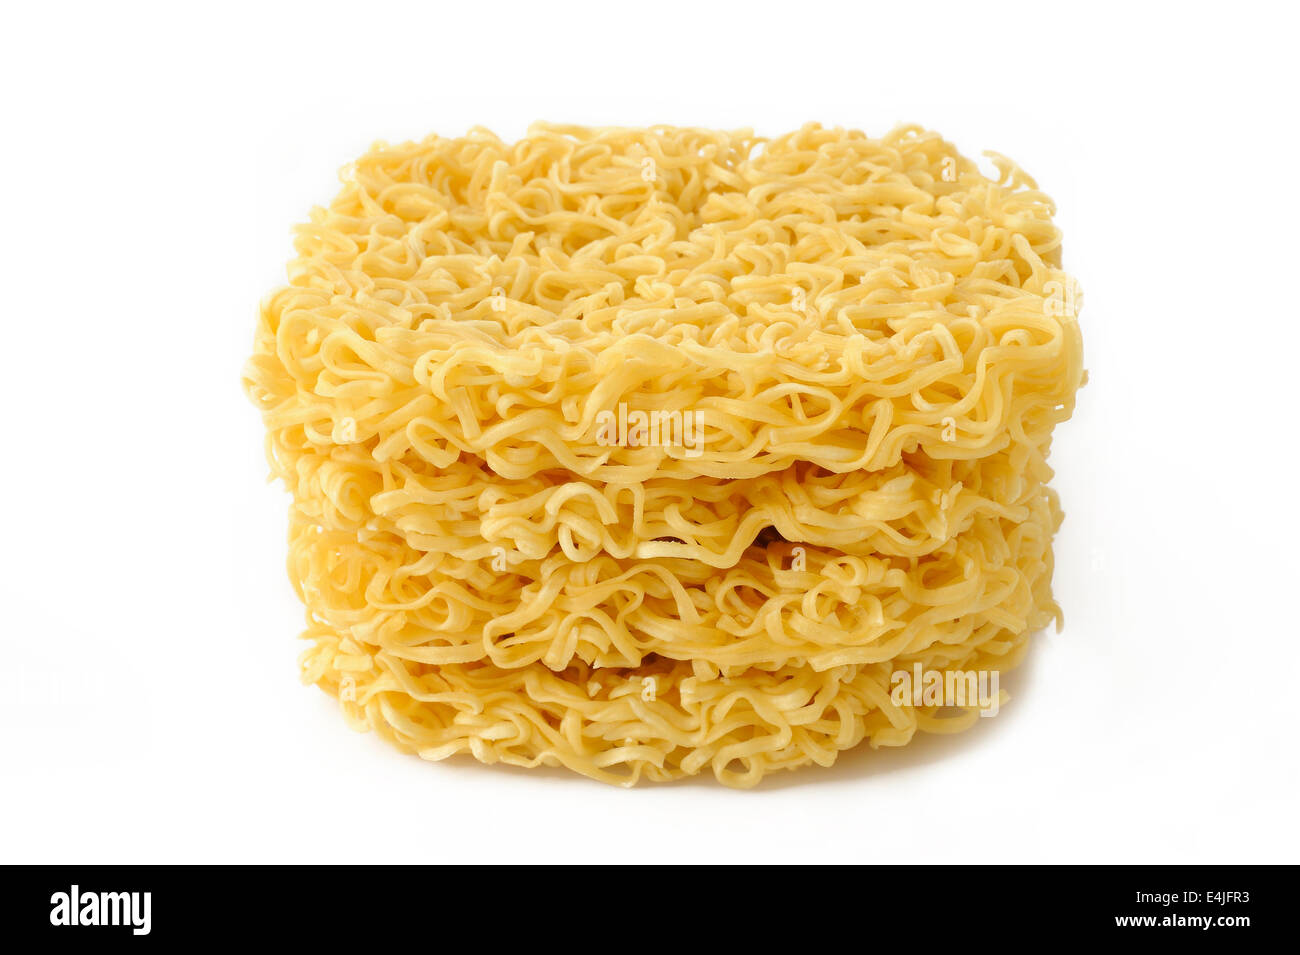 Dried noodles on white background - Stock Image